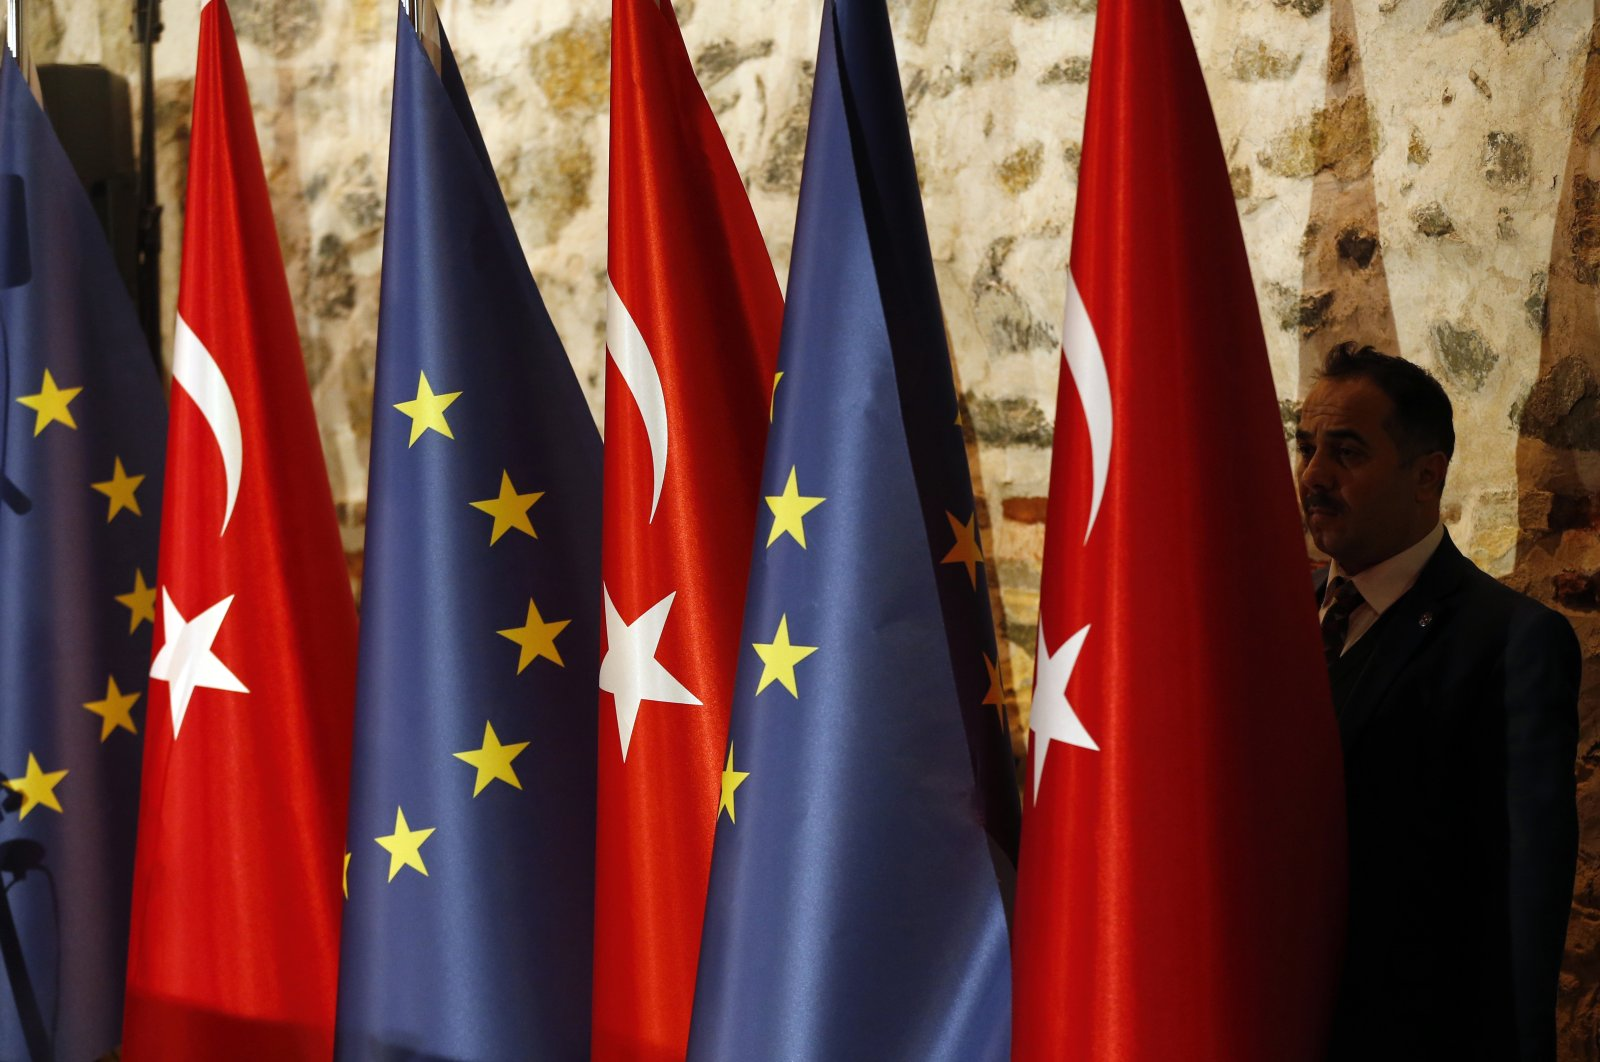 An official adjusts Turkey's and European flags prior to the opening session of a high-level meeting between EU and Turkey, in Istanbul, Thursday, Feb. 28, 2019. (AP File Photo)